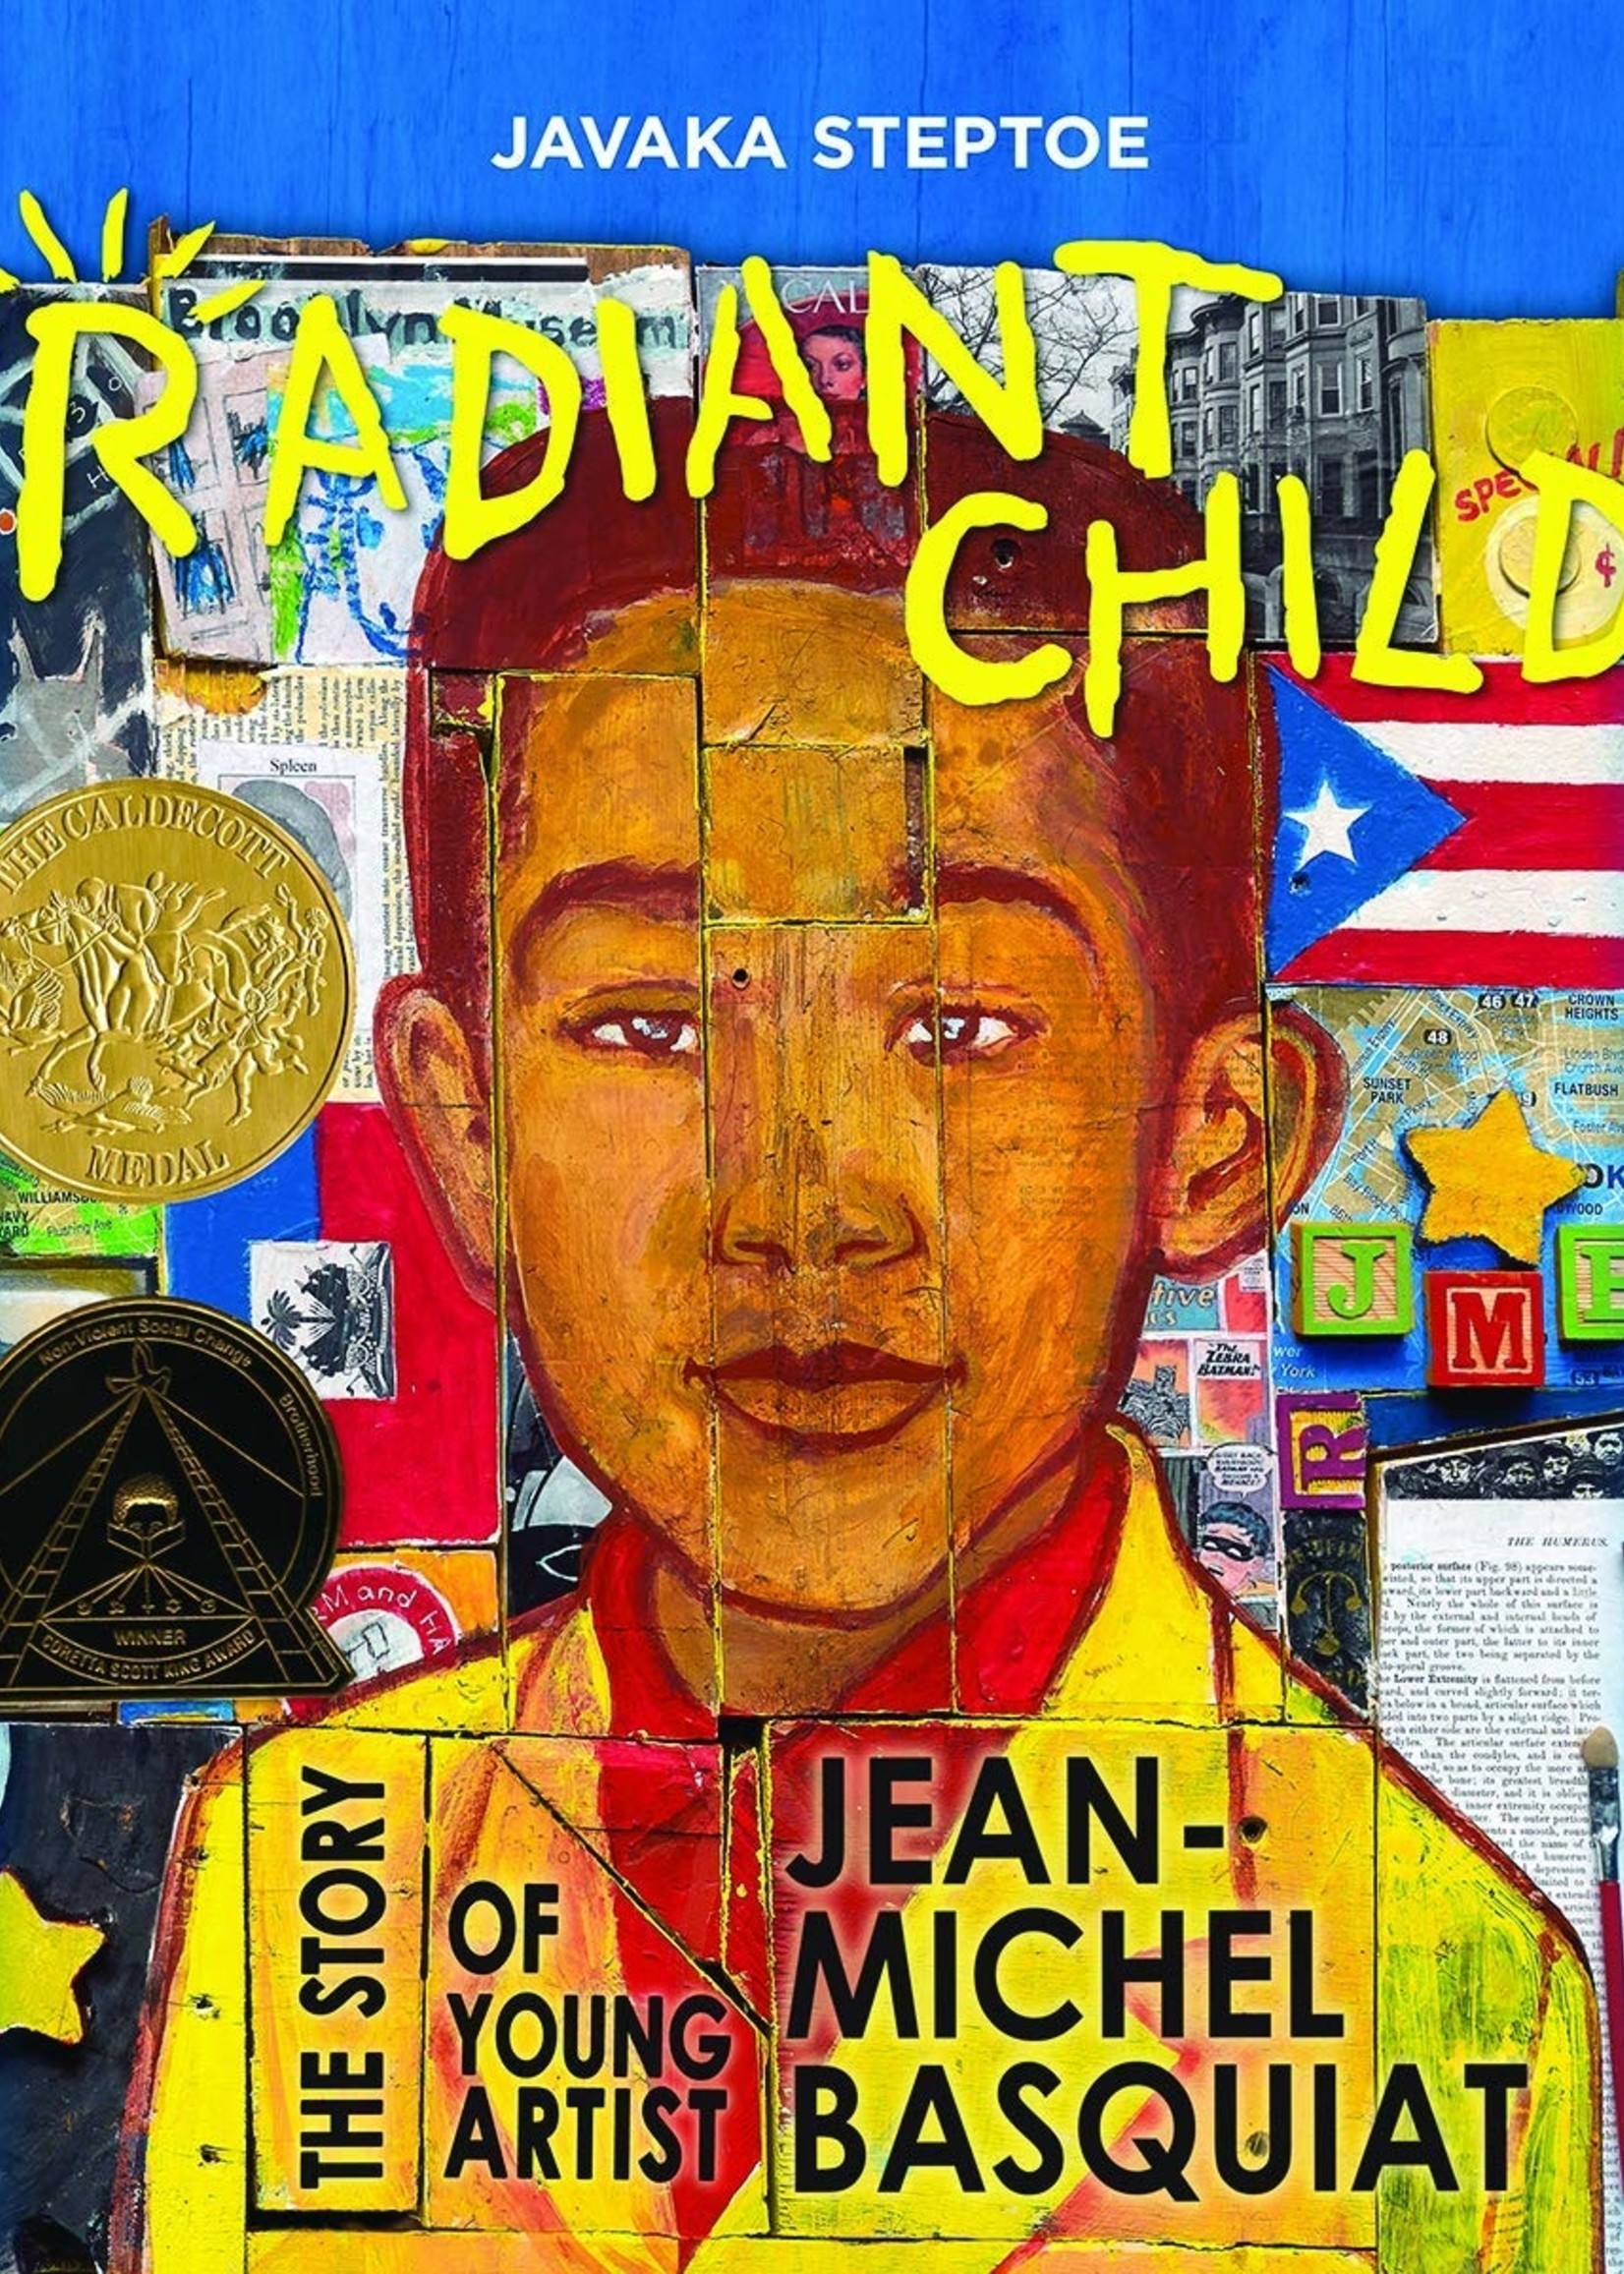 Radiant Child, The Story of Young Artist Jean-Michel Basquiat - Hardcover